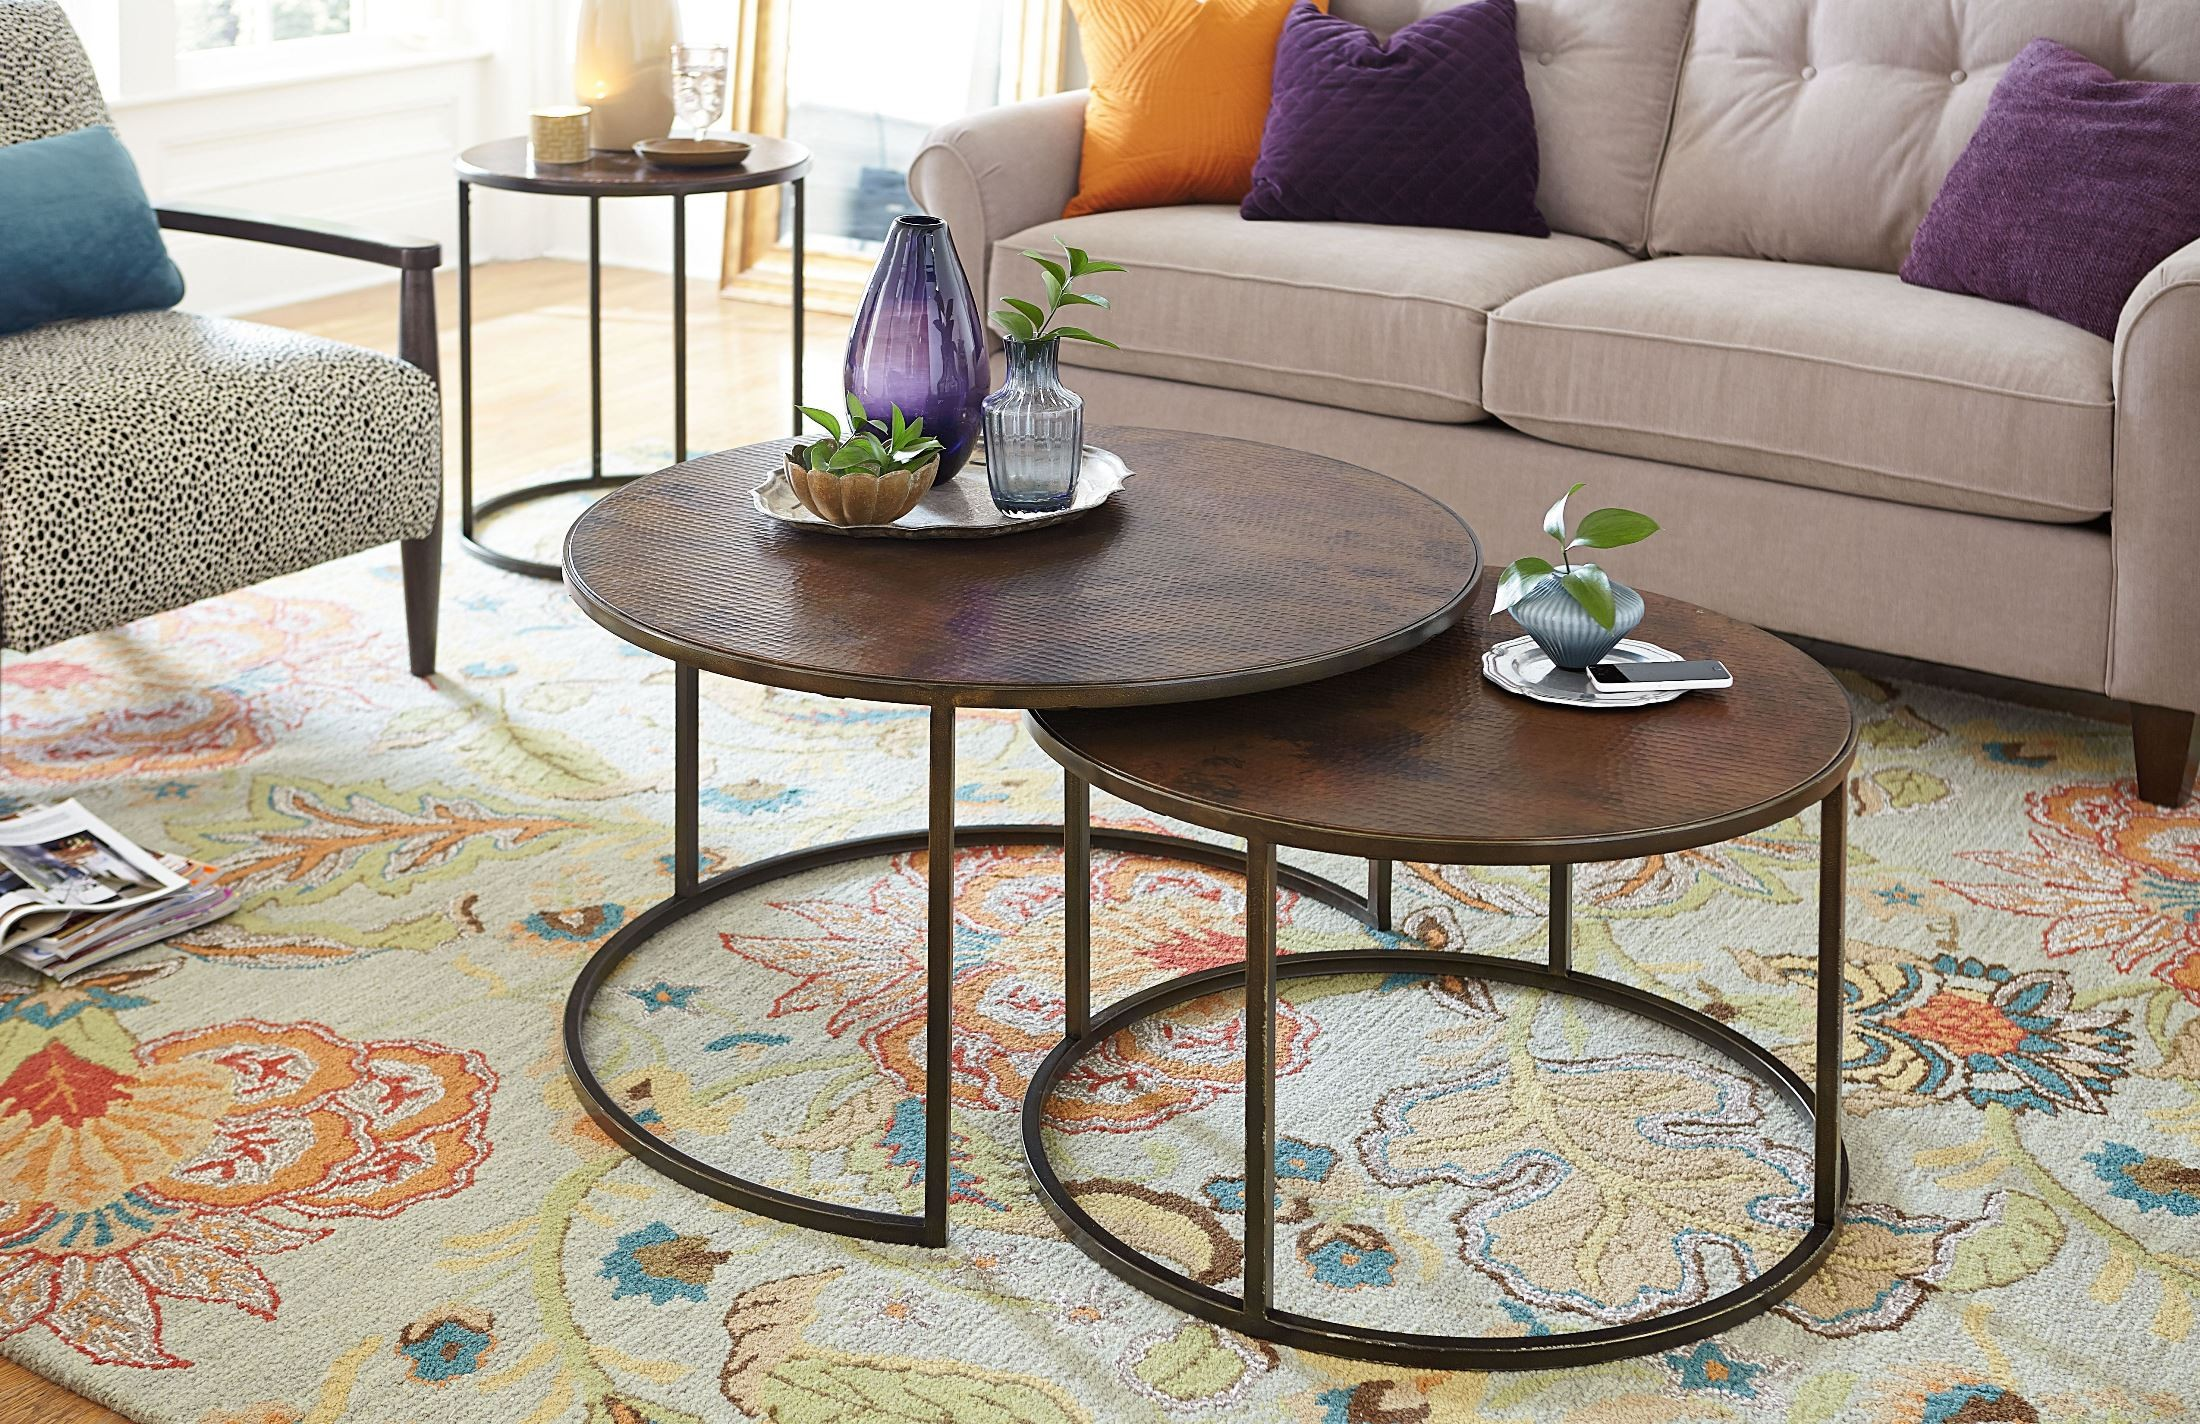 Sanford Acid Washed Copper Top Round Cocktail Table from Hammary